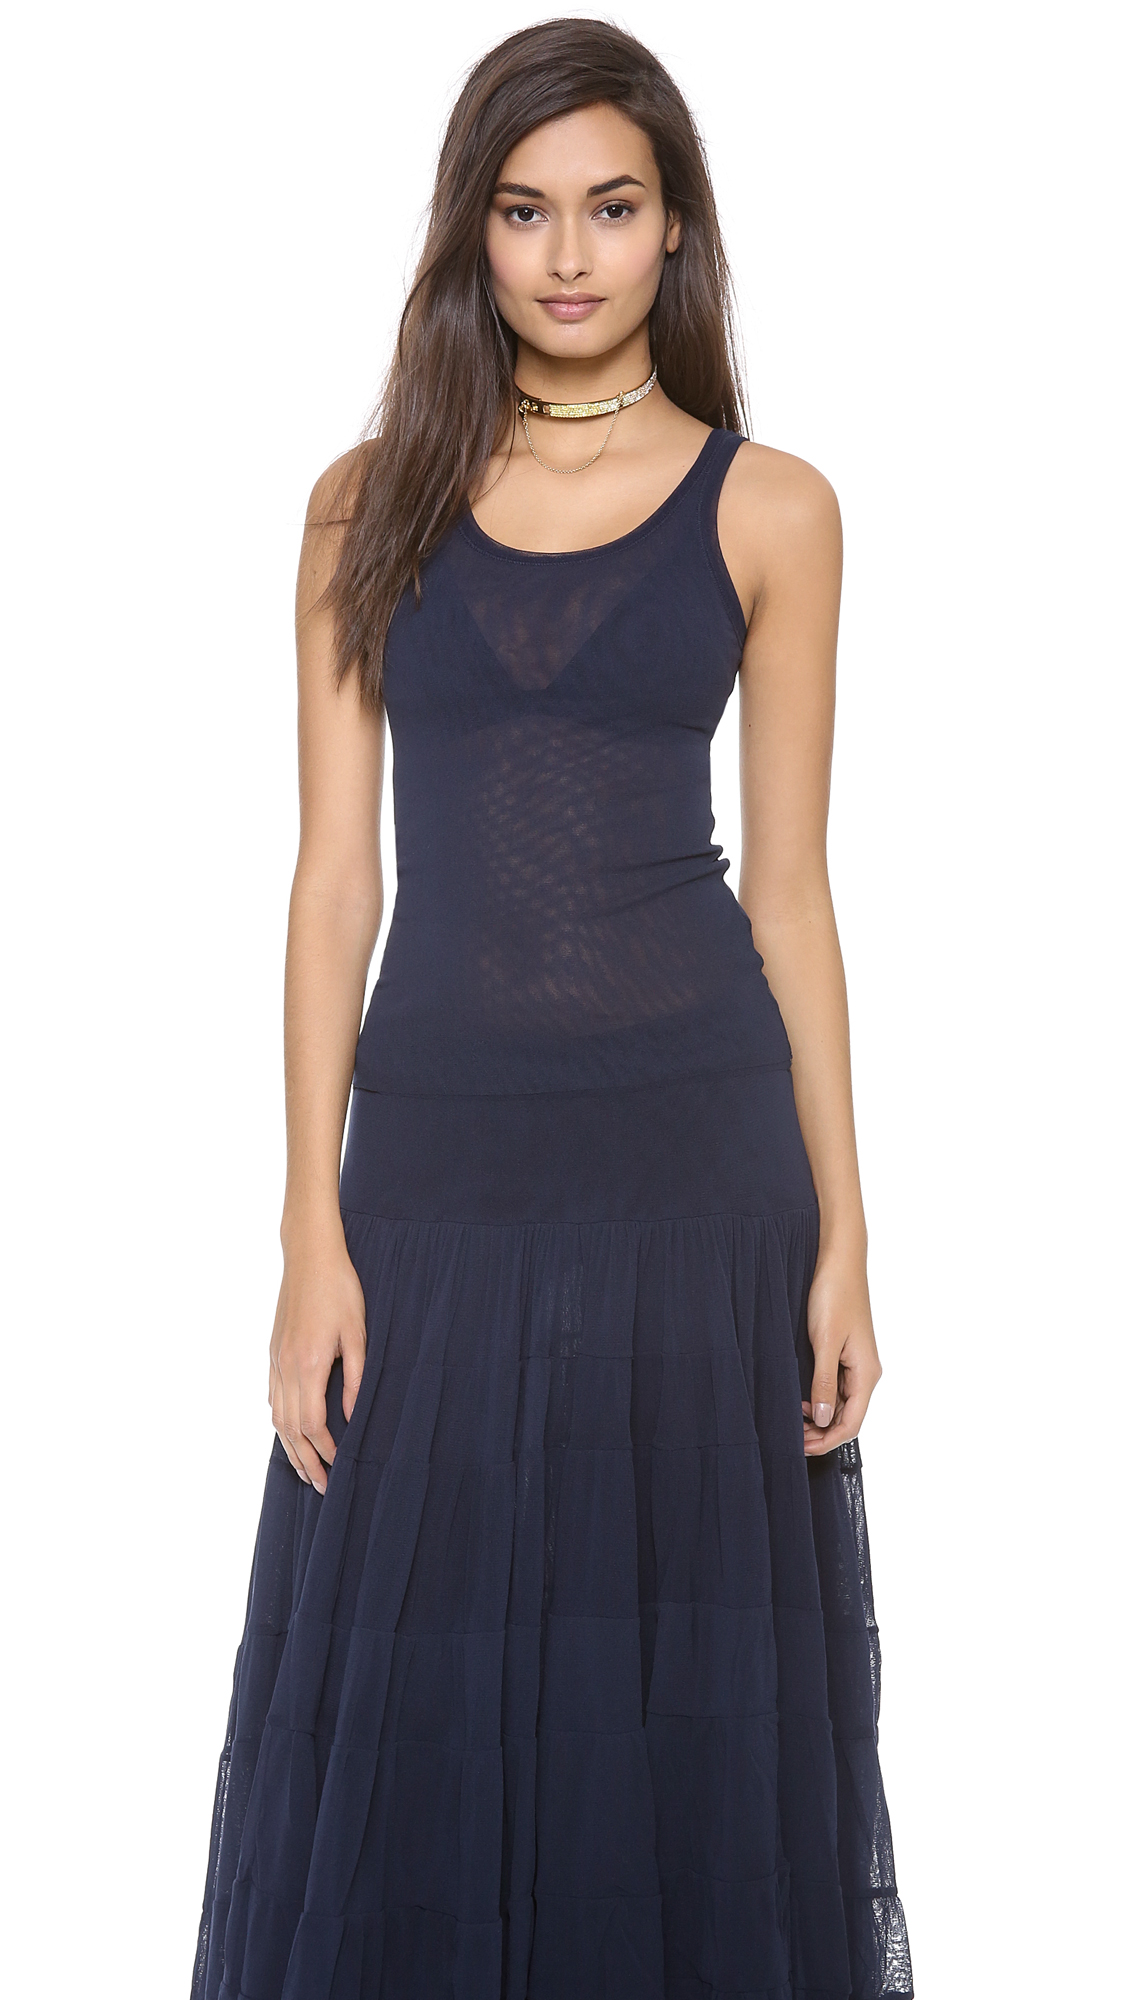 jean paul gaultier mesh tank in blue navy lyst. Black Bedroom Furniture Sets. Home Design Ideas